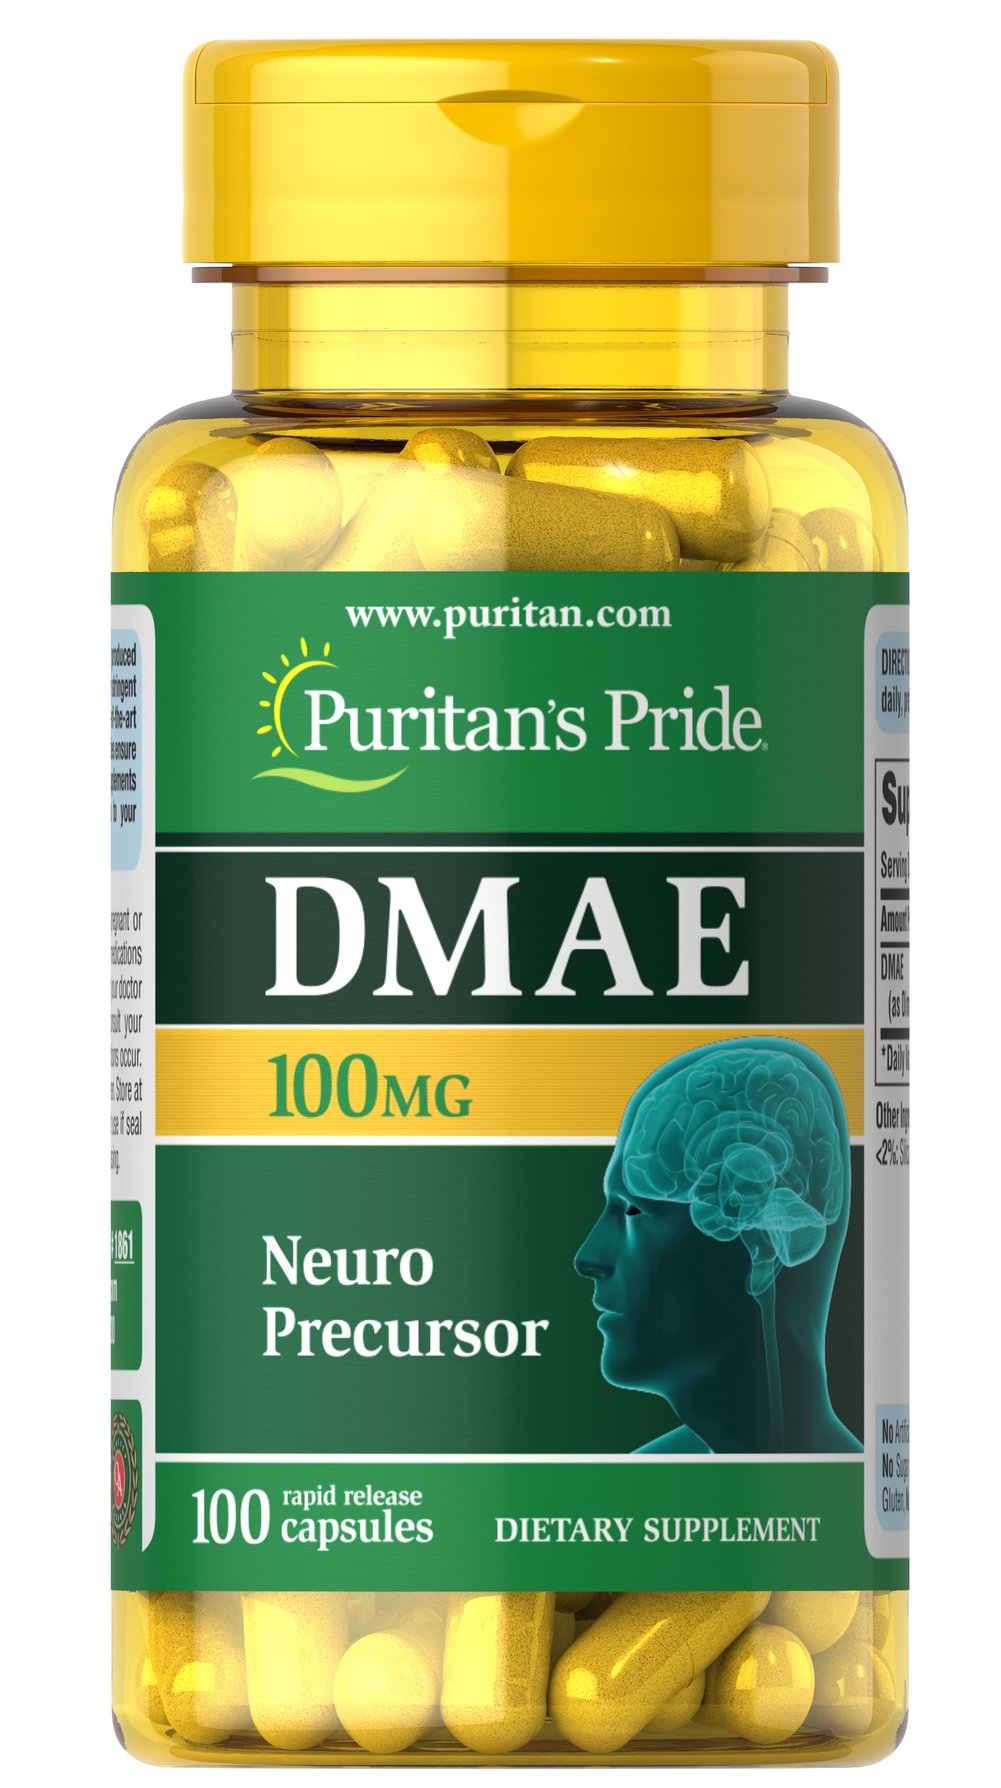 DMAE 100 mg <p>Often known as Dimethylaminoethanol, DMAE is a natural metabolite in the body. DMAE is related to the B factor choline and is a precursor to acetylcholine. Adults can take one capsule daily with a meal.</p> 100 Capsules 100 mg $12.99